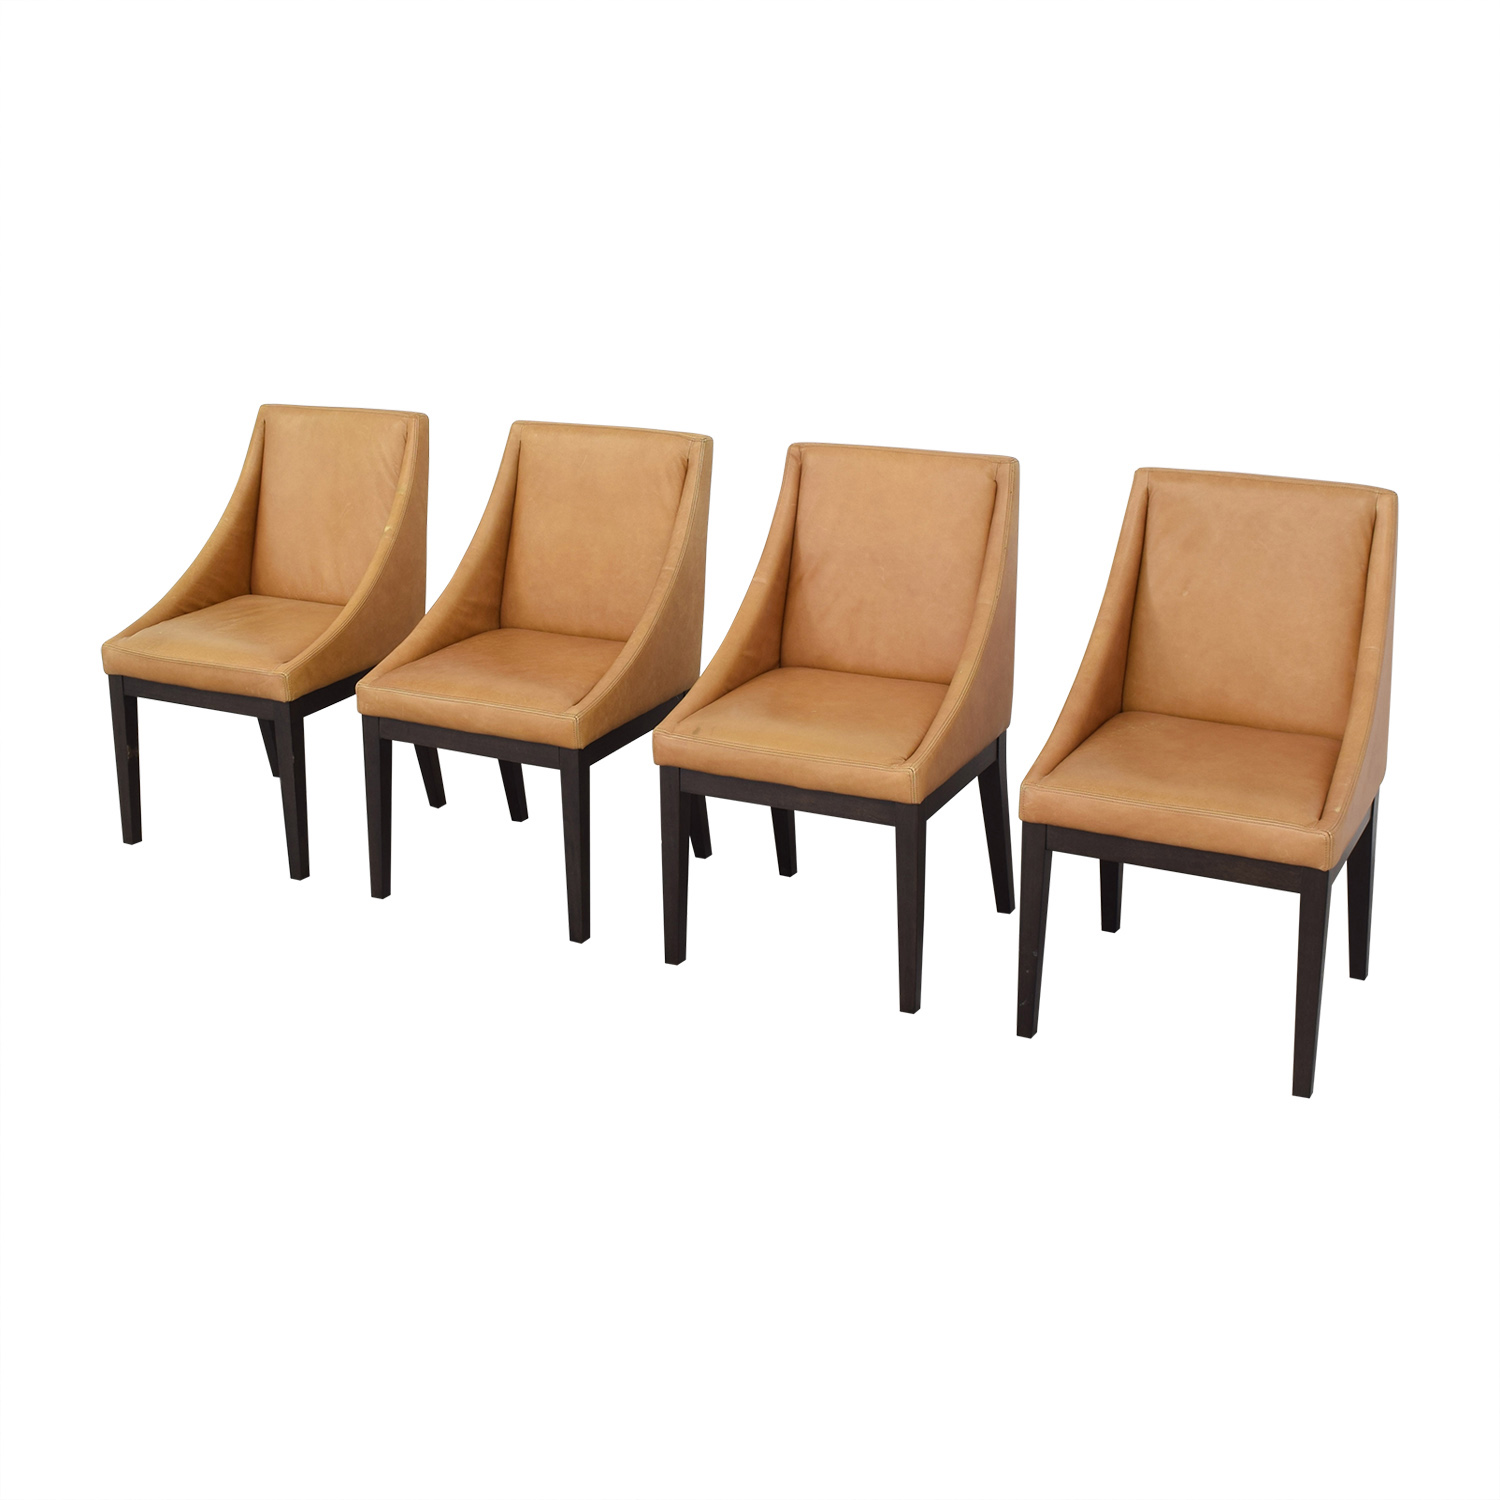 West Elm West Elm Curved Leather Chairs on sale